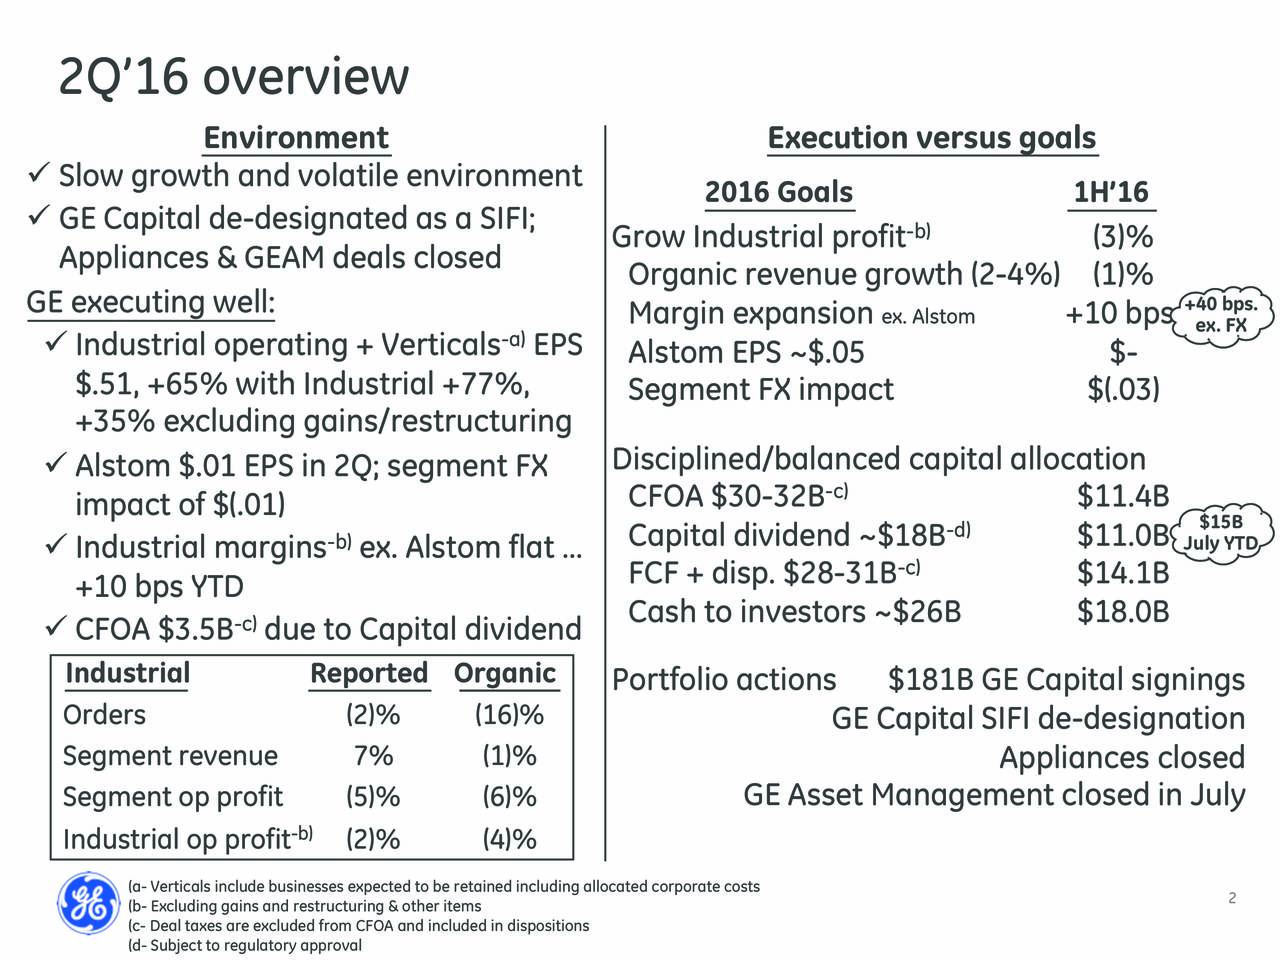 Environment Execution versus goals Slow growth and volatile environment 2016 Goals 1H16 GE Capital de-designated as a SIFI; Grow Industrial profit -b) (3)% Appliances & GEAM deals closed Organic revenue growth (2-4%) (1)% GE executing well: Margin expansion ex. Alstom +10 bps. +ex. FX. Industrial operating + Verticals -aEPS Alstom EPS ~$.05 $- $.51, +65% with Industrial +77%, Segment FX impact $(.03) +35% excluding gains/restructuring Alstom $.01 EPS in 2Q; segment FX Disciplined/balanced capital allocation CFOA $30-32B -c) $11.4B impact of $(.01) -d) $15B Industrial margins -b)ex. Alstom flat  Capital dividend ~$18B $11.0B July YTD FCF + disp. $28-31B -c) $14.1B +10 bps YTD Cash to investors ~$26B $18.0B CFOA $3.5B due to Capital dividend Industrial Reported Organic Portfolio actions $181B GE Capital signings Orders (2)% (16)% GE Capital SIFI de-designation Segment revenue 7% (1)% Appliances closed Segment op profit (5)% (6)% GE Asset Management closed in July Industrial op profit) (2)% (4)% (b- Excluding gains and restructuring & other itemsained including allocated corporate c2sts (c- Deal taxes are excluded from CFOA and included in dispositions